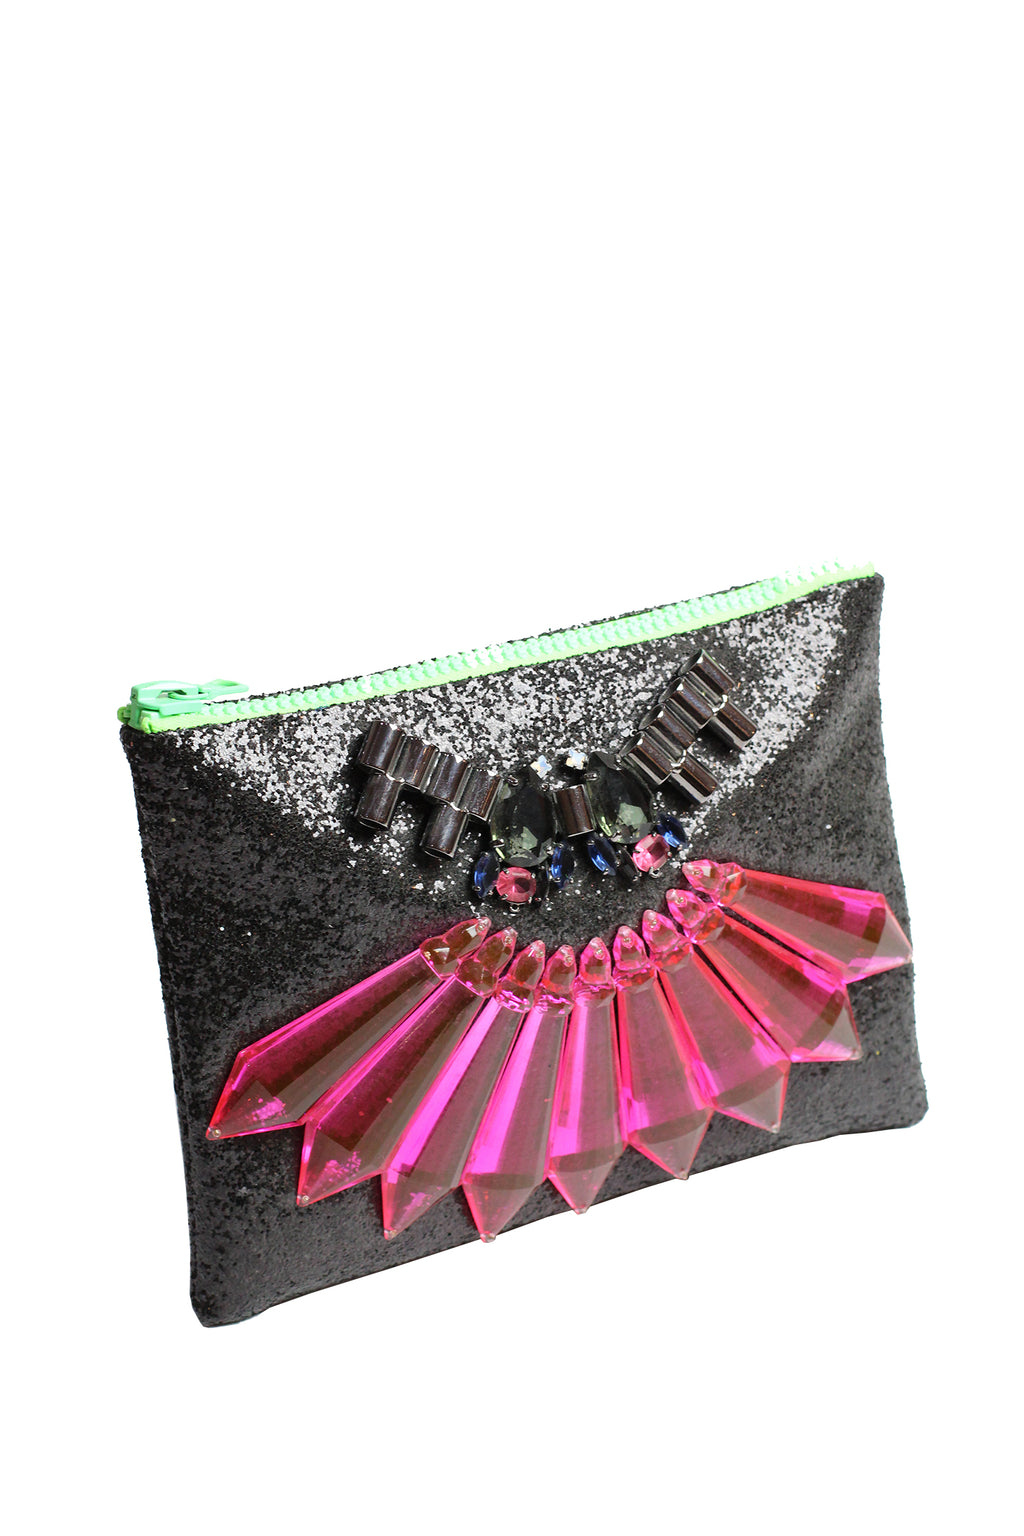 Mawi - Single glitter clutch w/spikes,tubes crystal teardrops